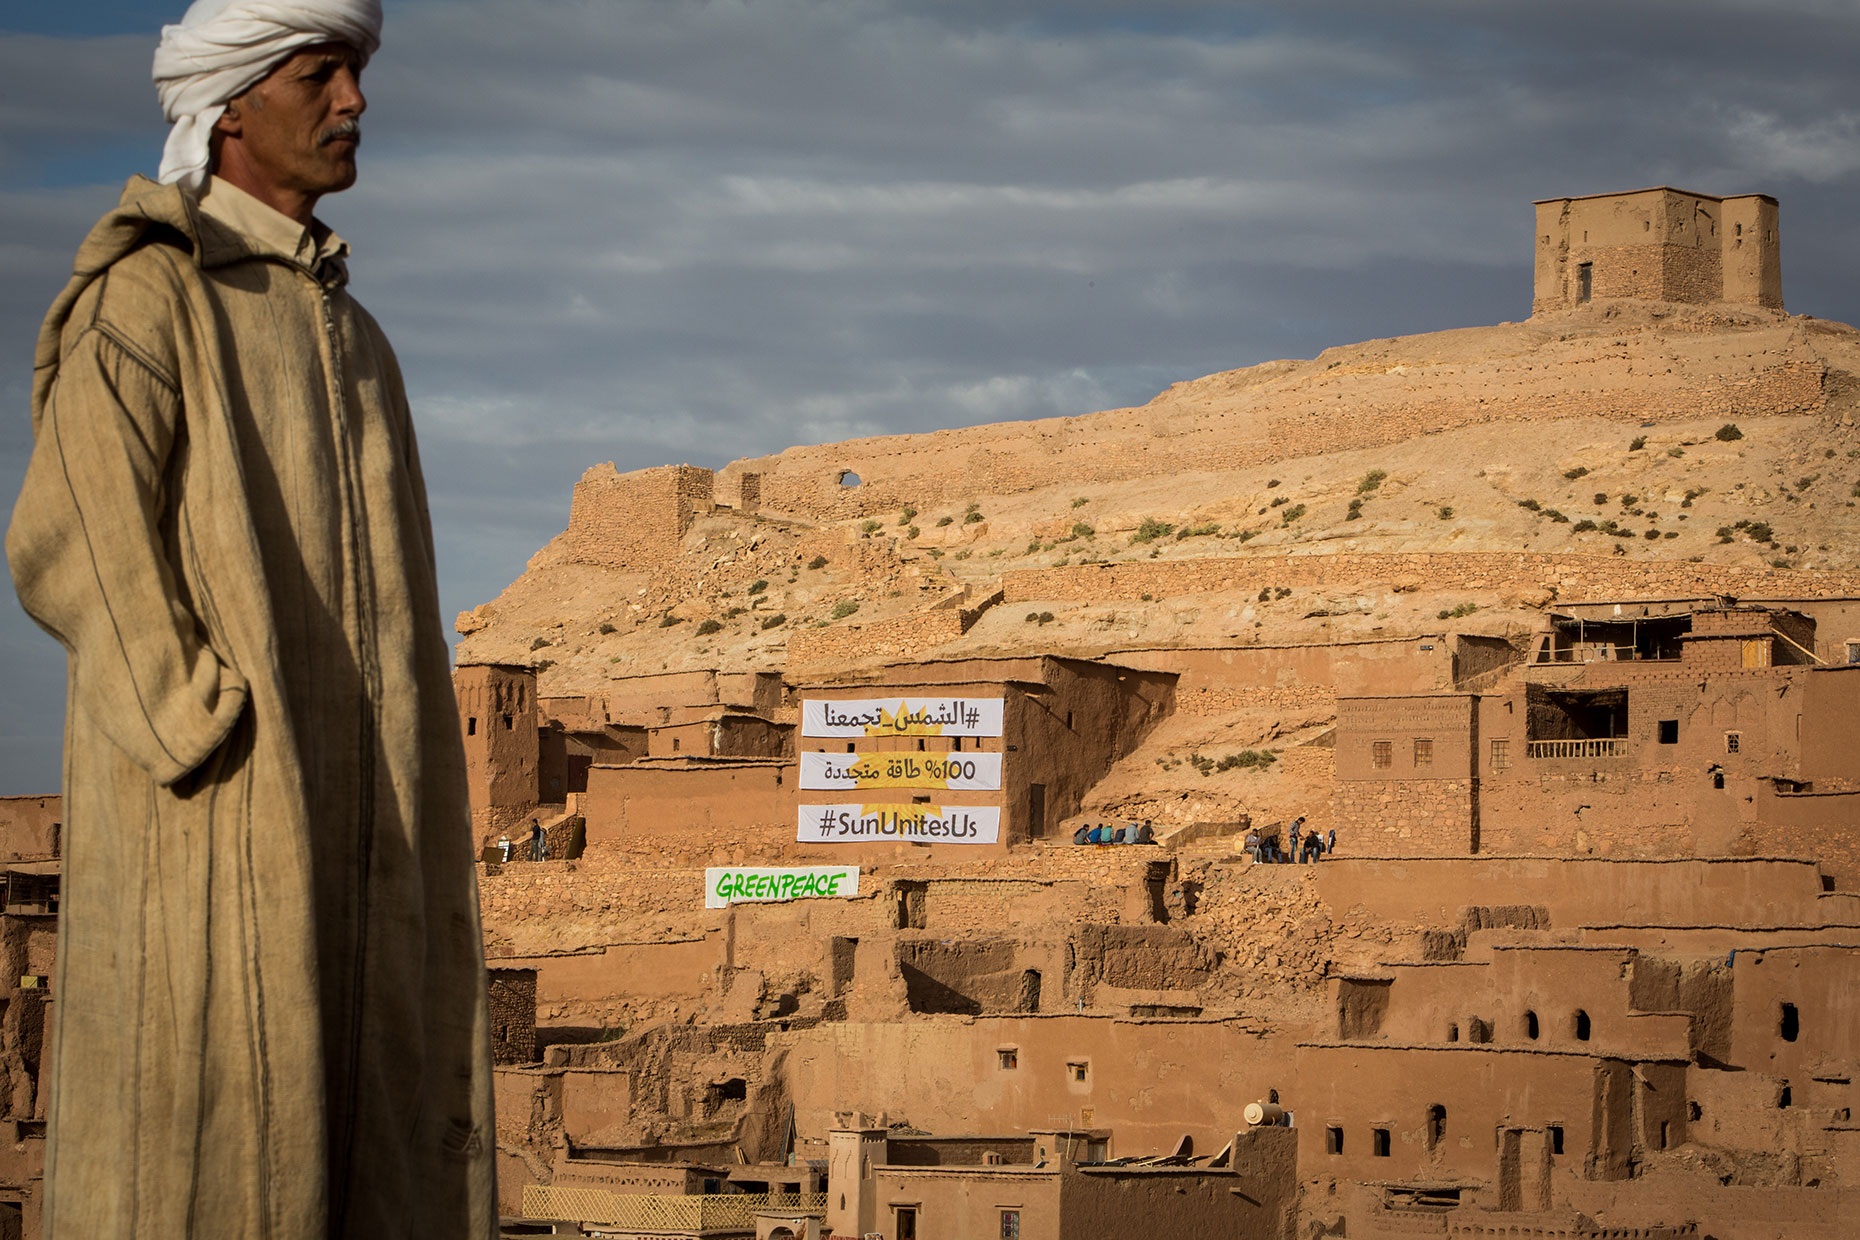 Ait Ben Haddou in Morocco, by Scotland Greenpeace photographer